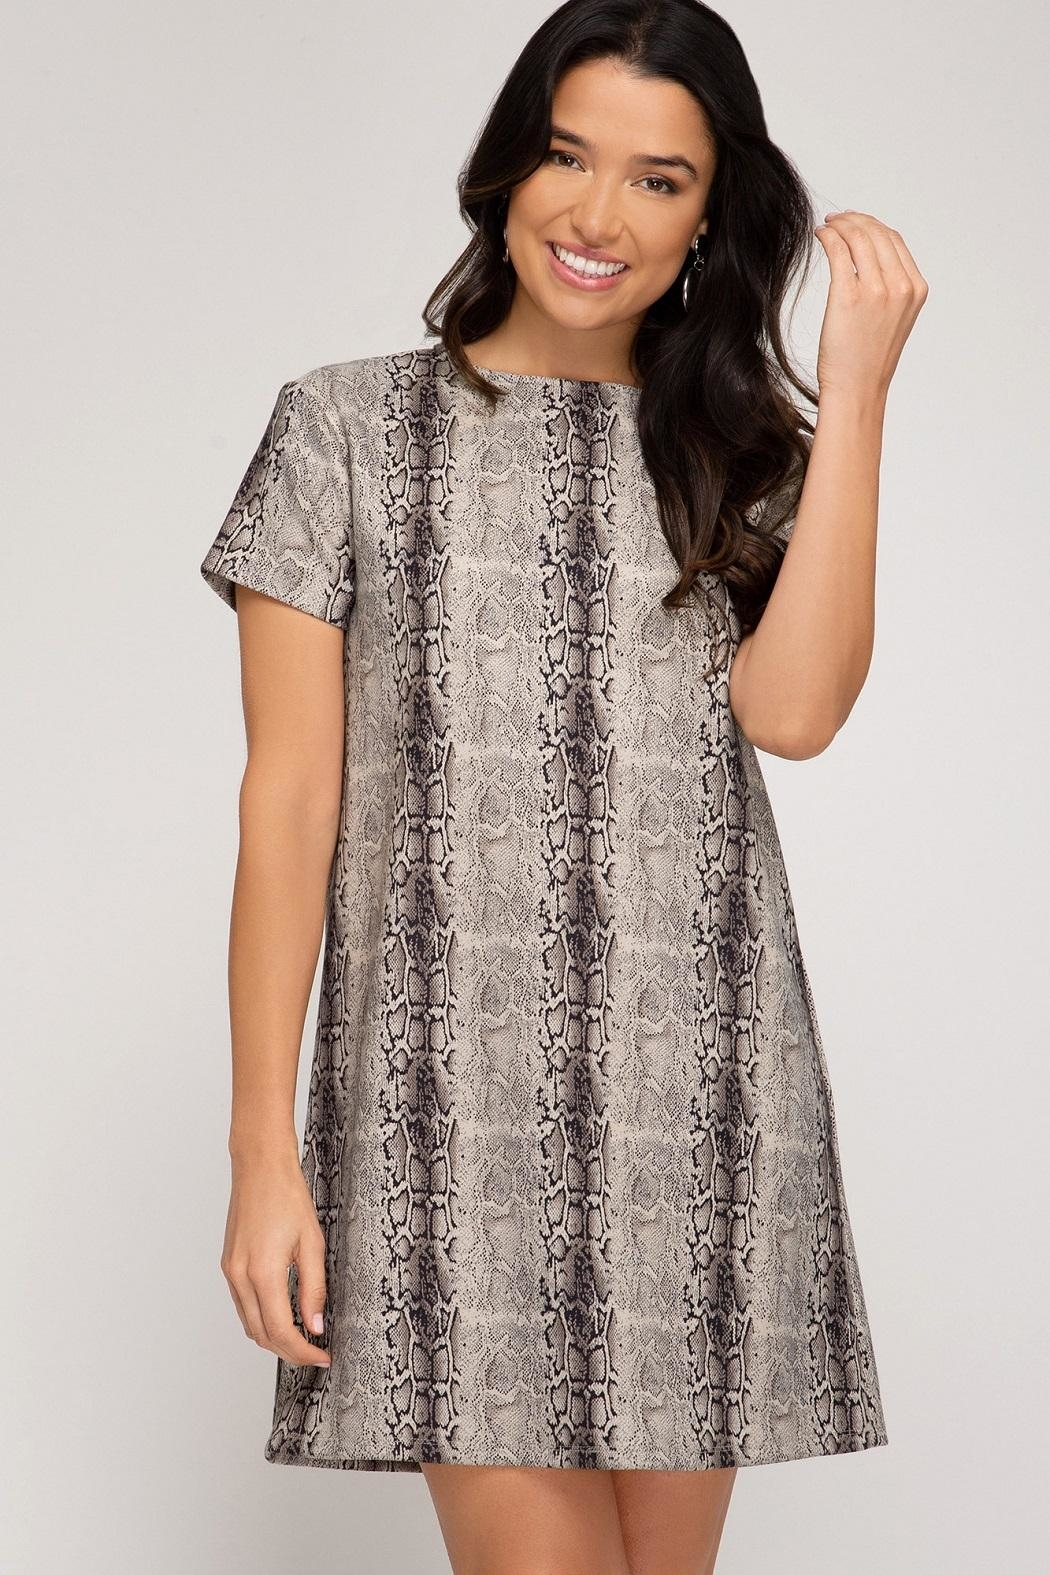 She + Sky Birch Dress Stone - Main Image